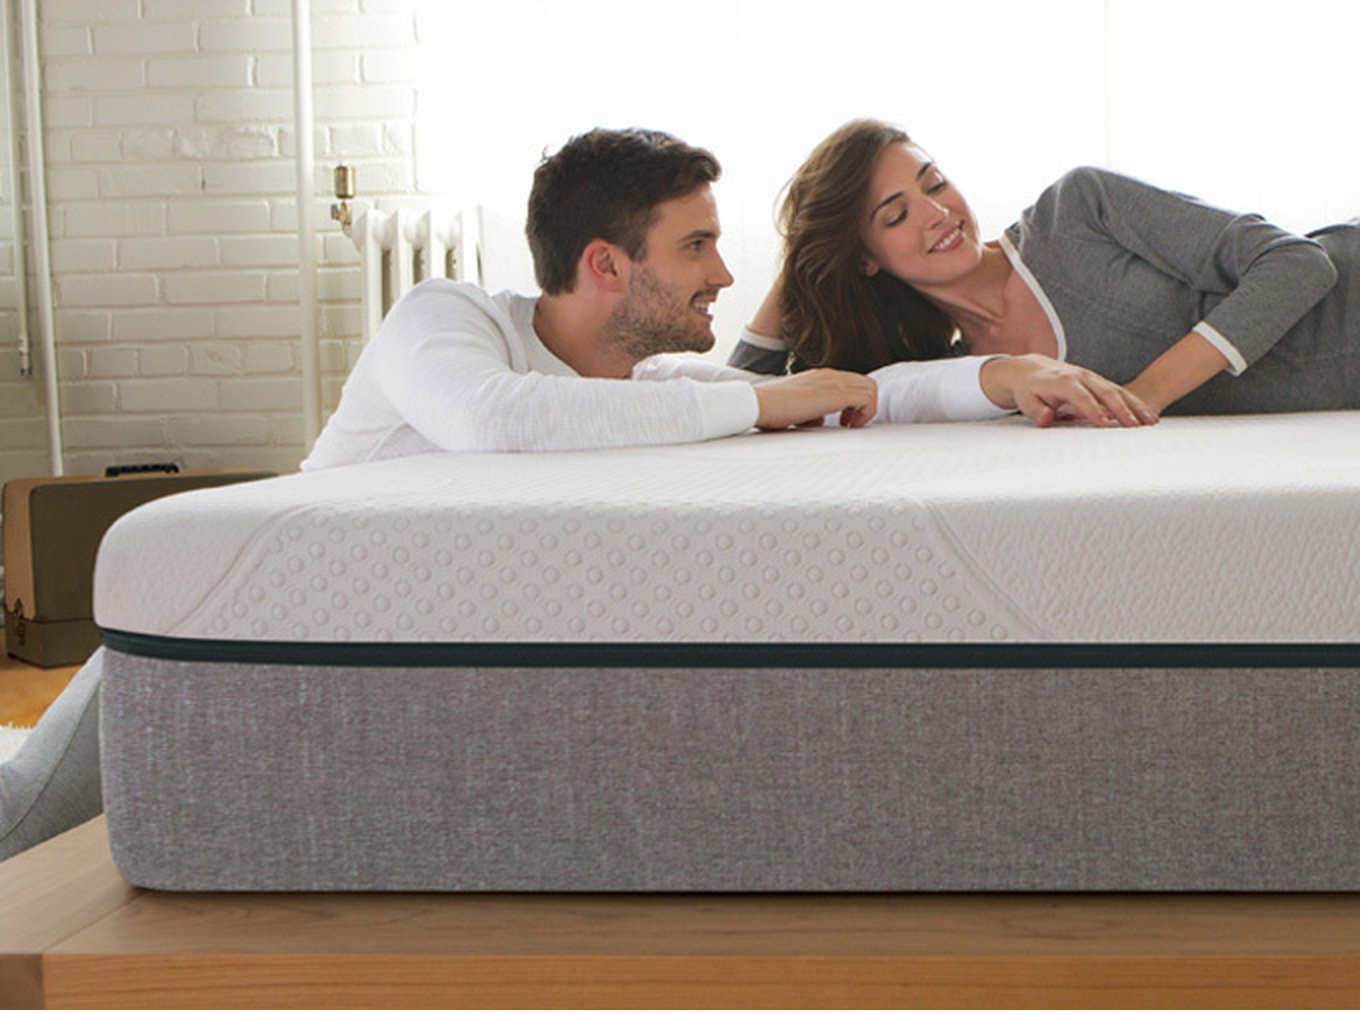 Mattress Overstock In Humble Tx Mattress Store Reviews Goodbed Com